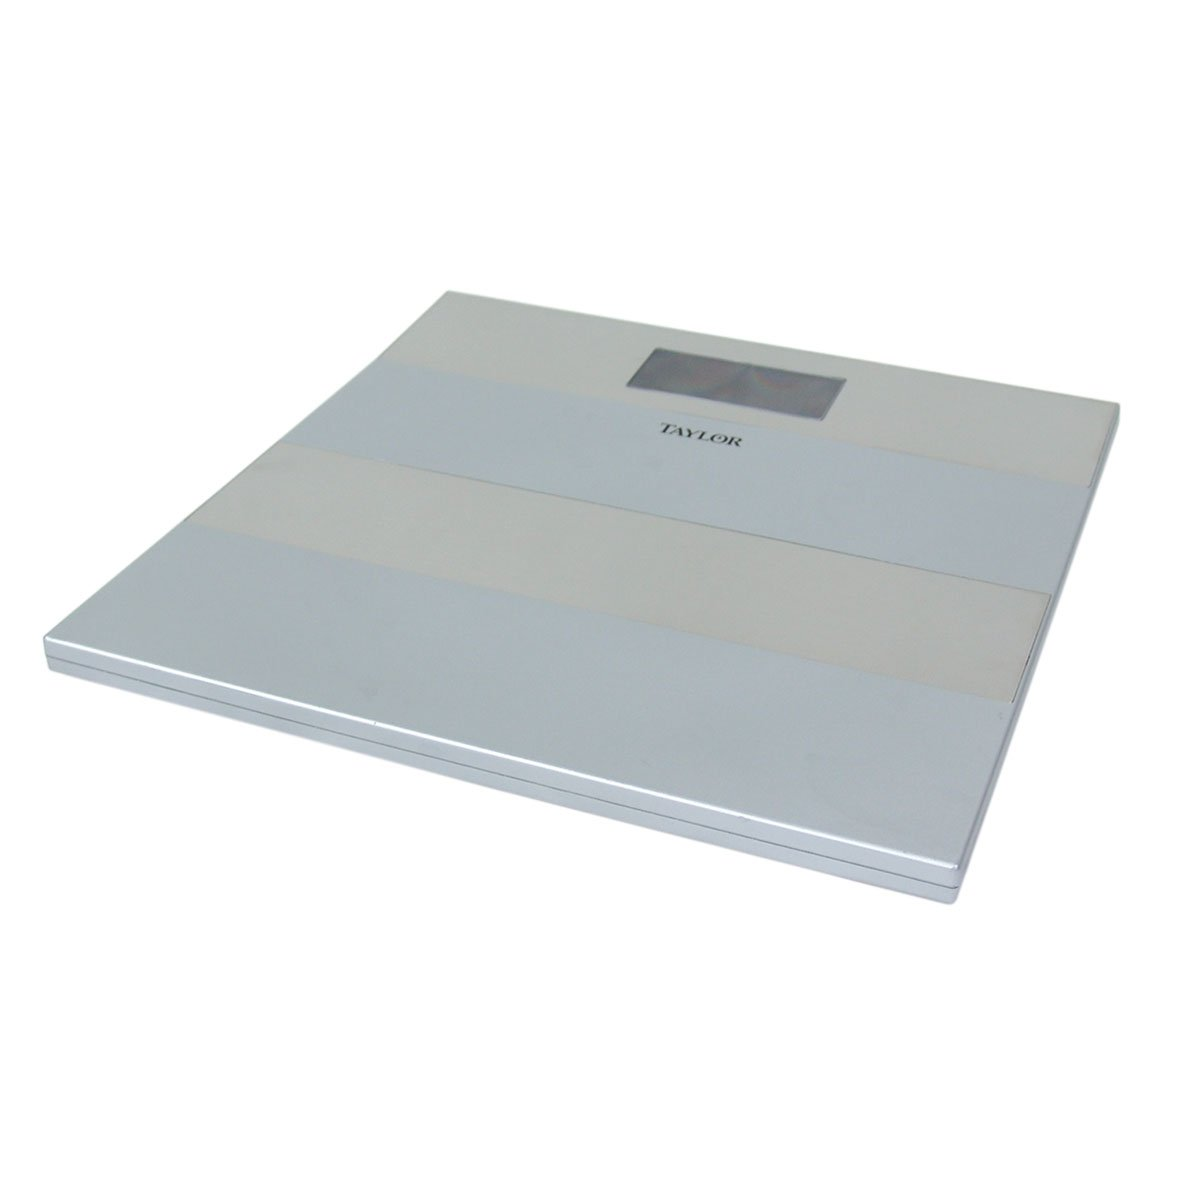 Amazon.com: Taylor 7411 Stainless Steel Electronic Scale (Certified ...